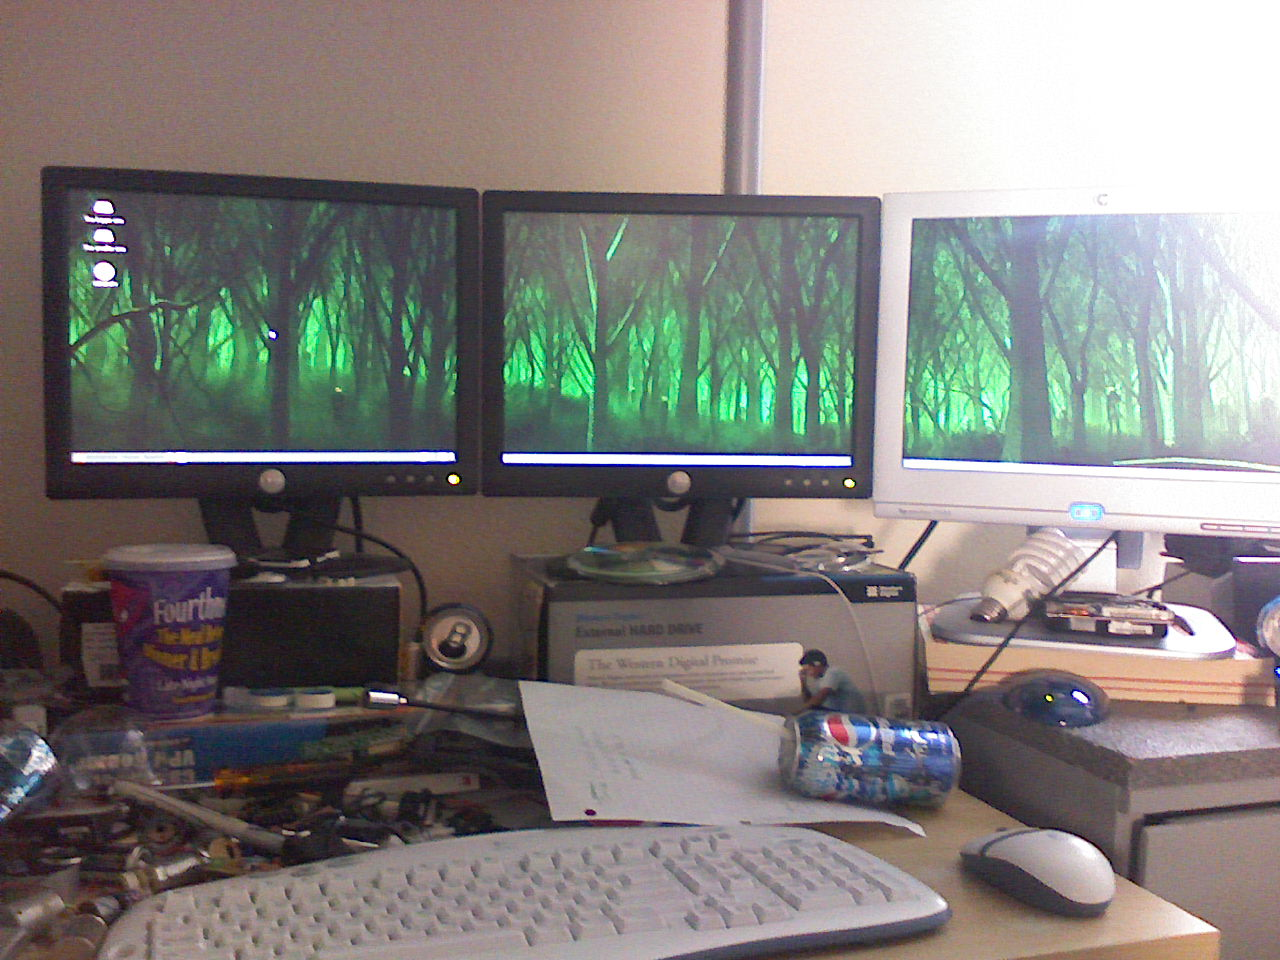 How To Set Up Multiple Monitors In Linux 6 Steps Instructables